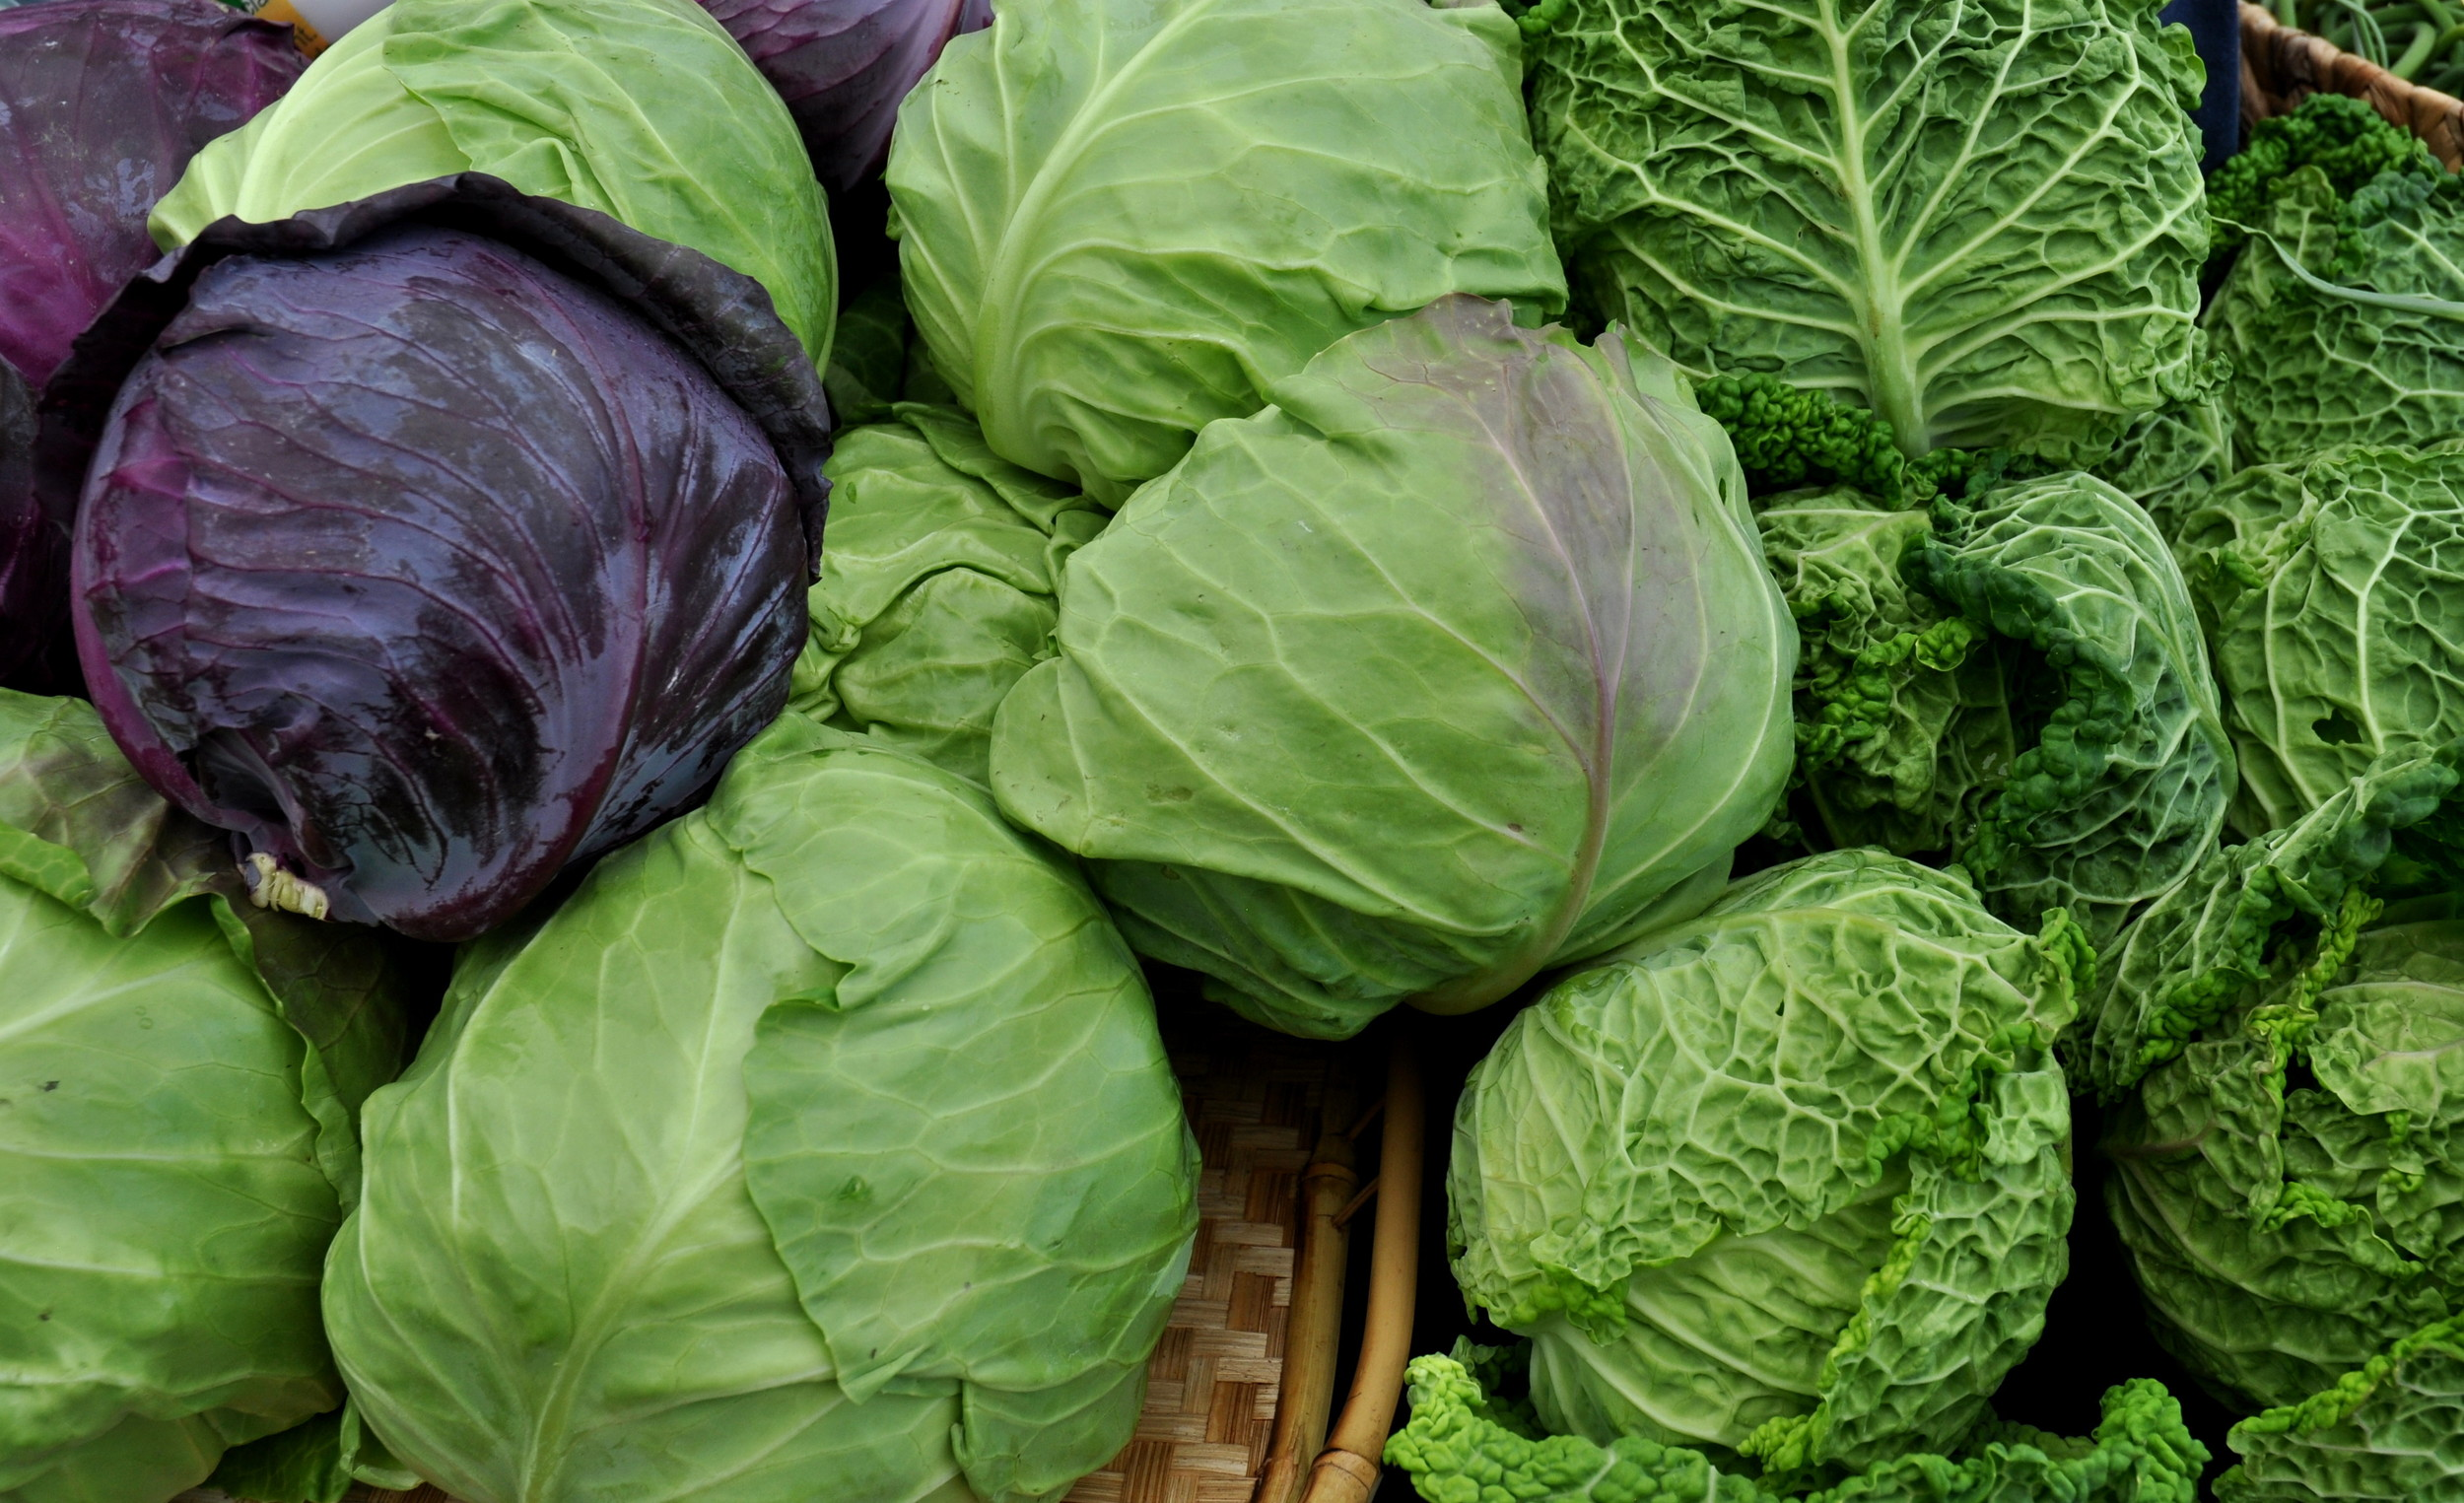 Cabbage from Kirsop Farm.. Photo copyright 2014 by Zachary D. Lyons.